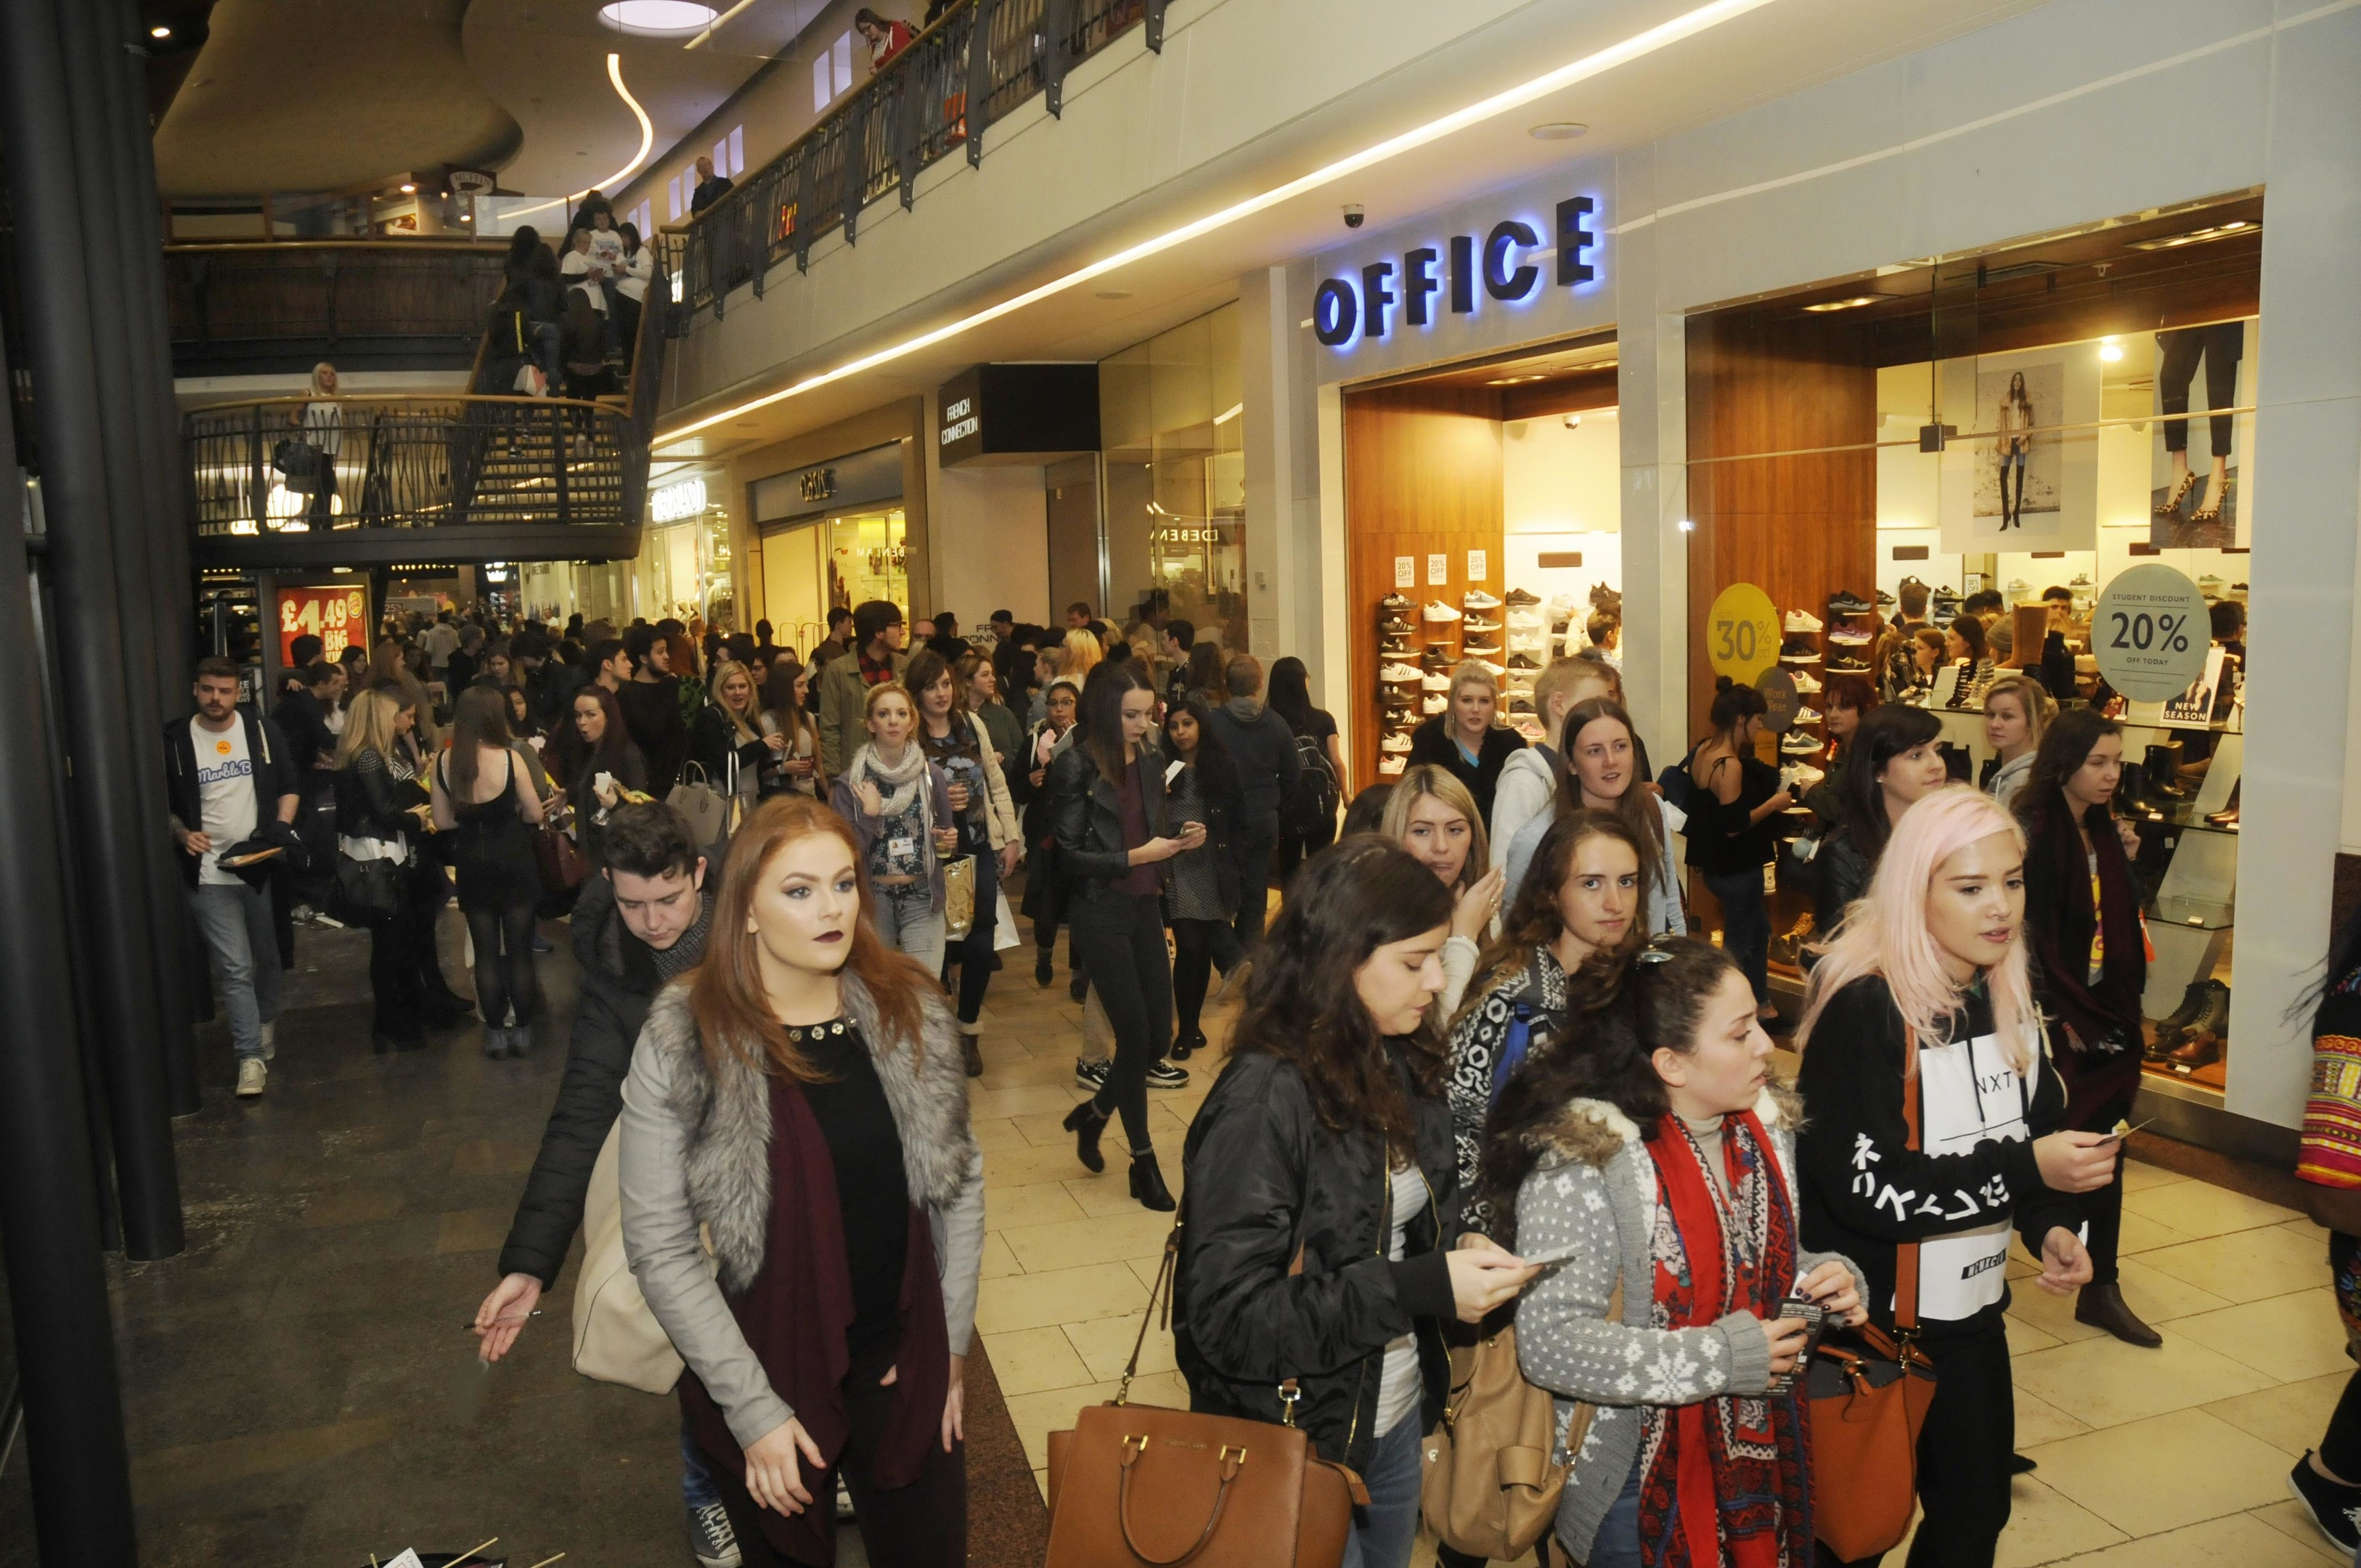 People may be more reluctant to shop in busy places